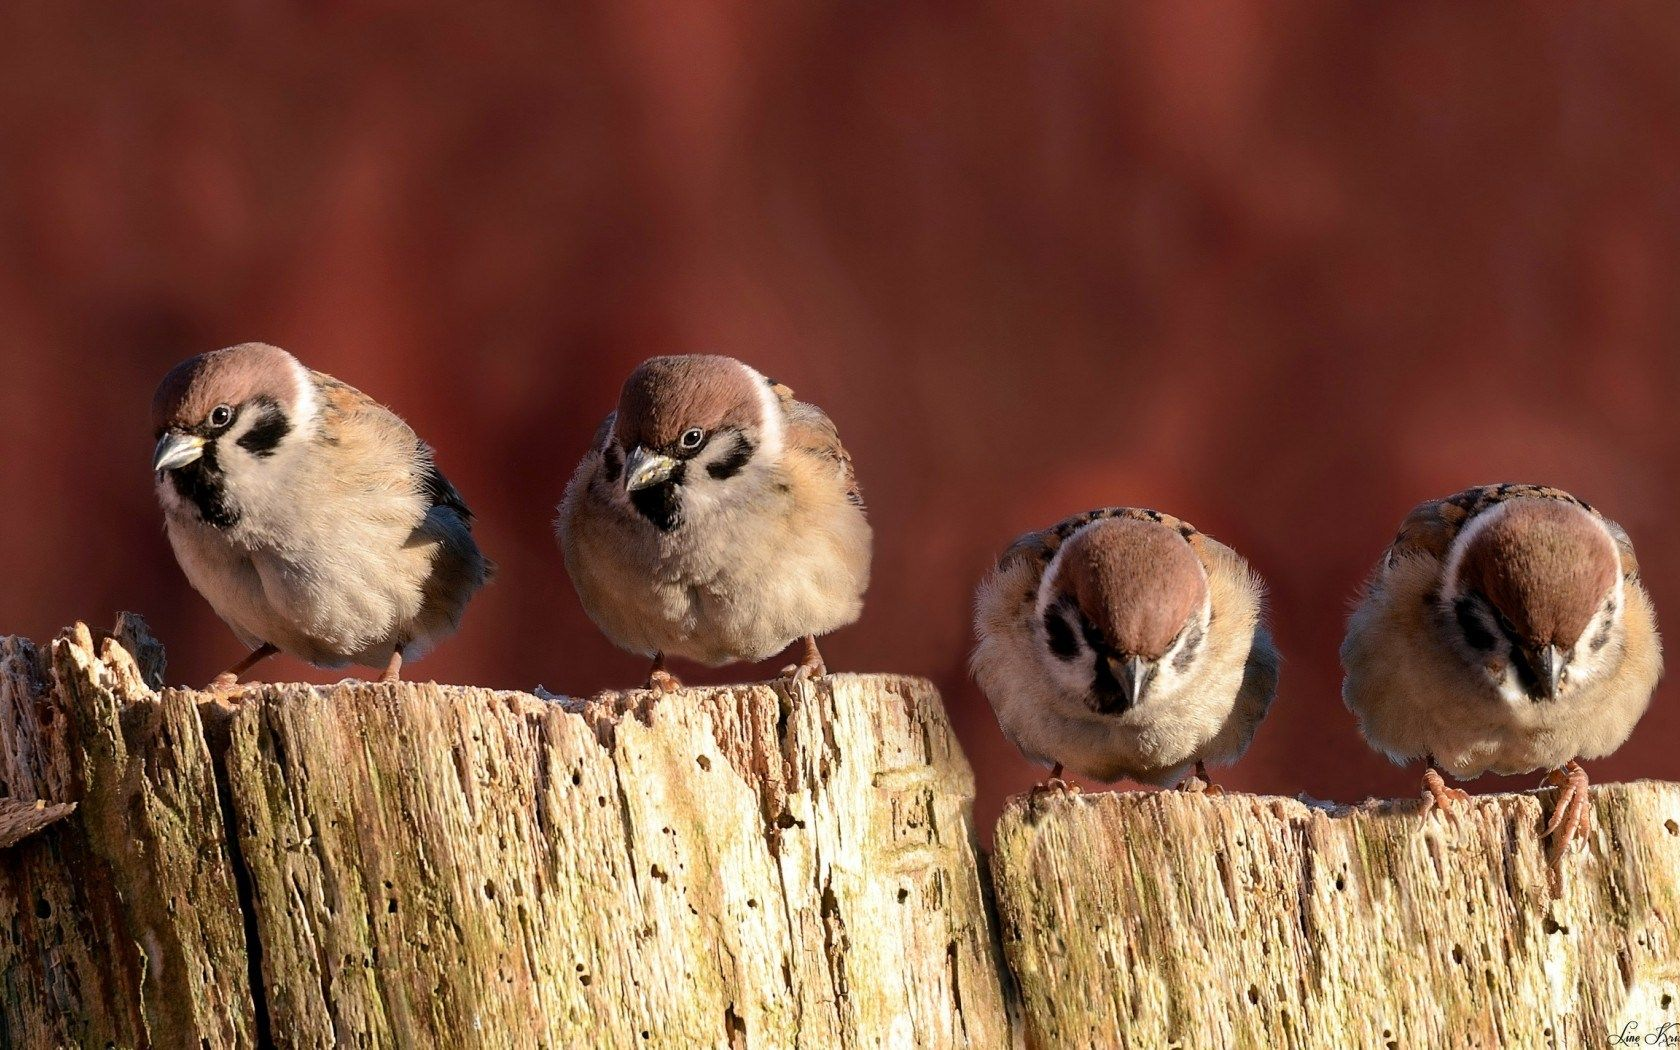 Four Sparrows Birds Close Up Dry Tree Stump HD Wallpaper